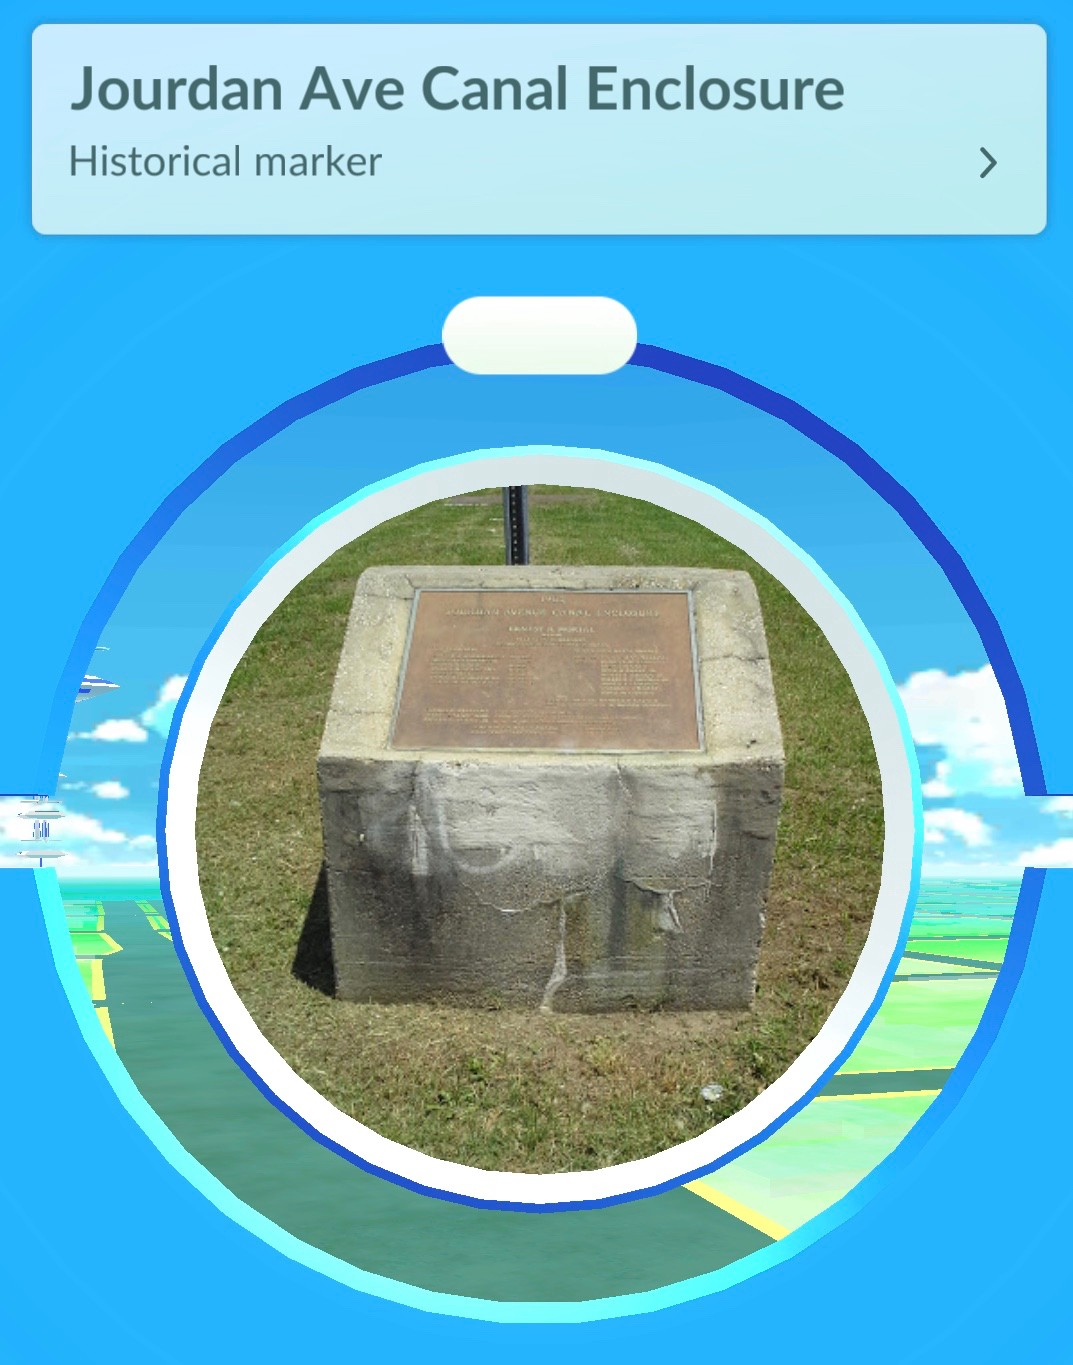 Pokémon Go in the Lower Ninth Ward - Letters From Here - Medium